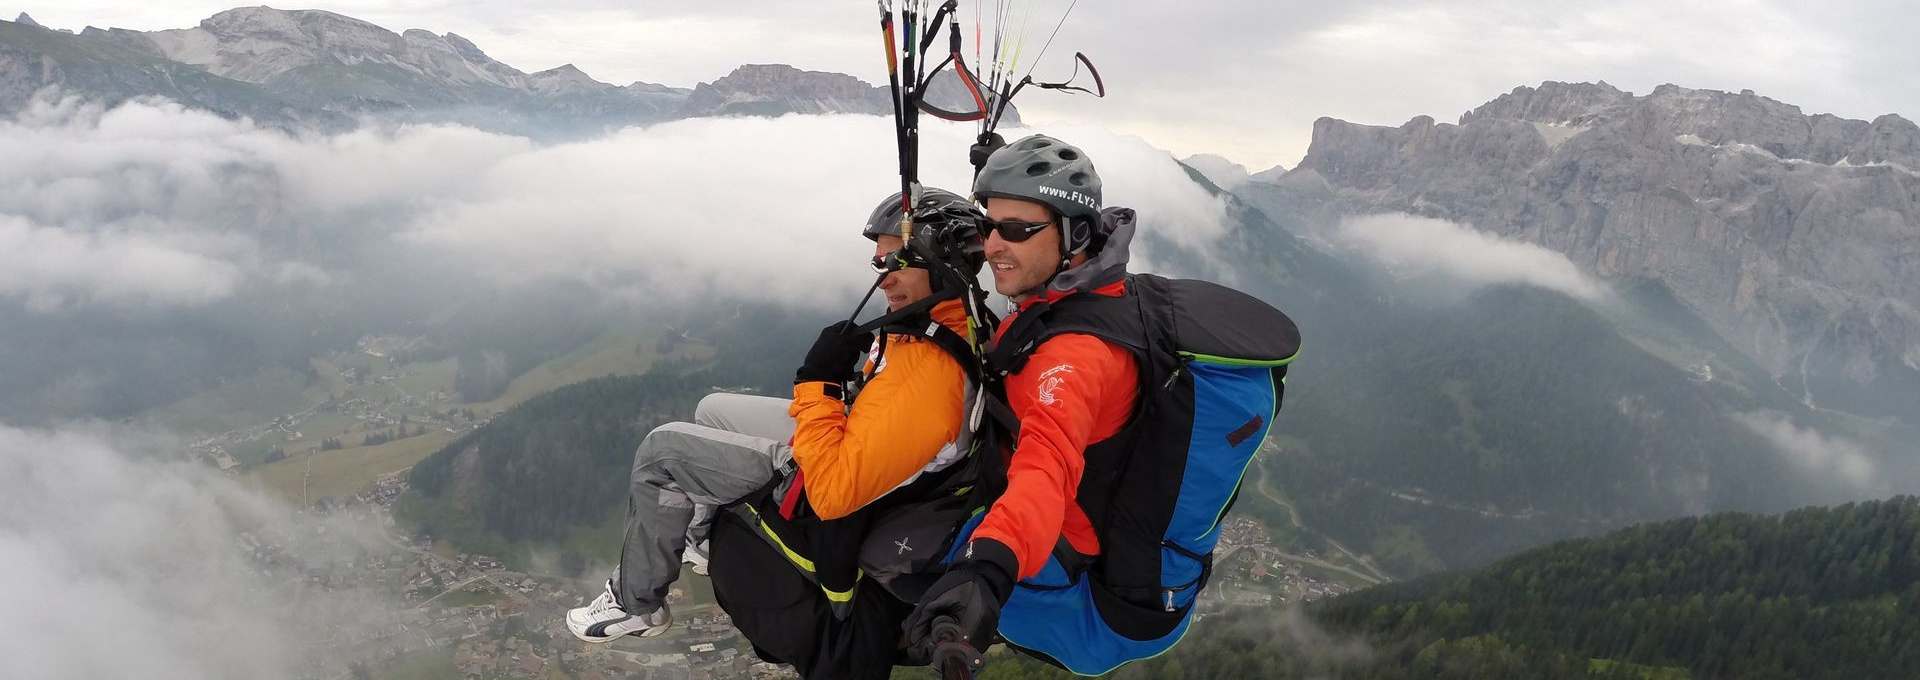 over the clouds - paragliding